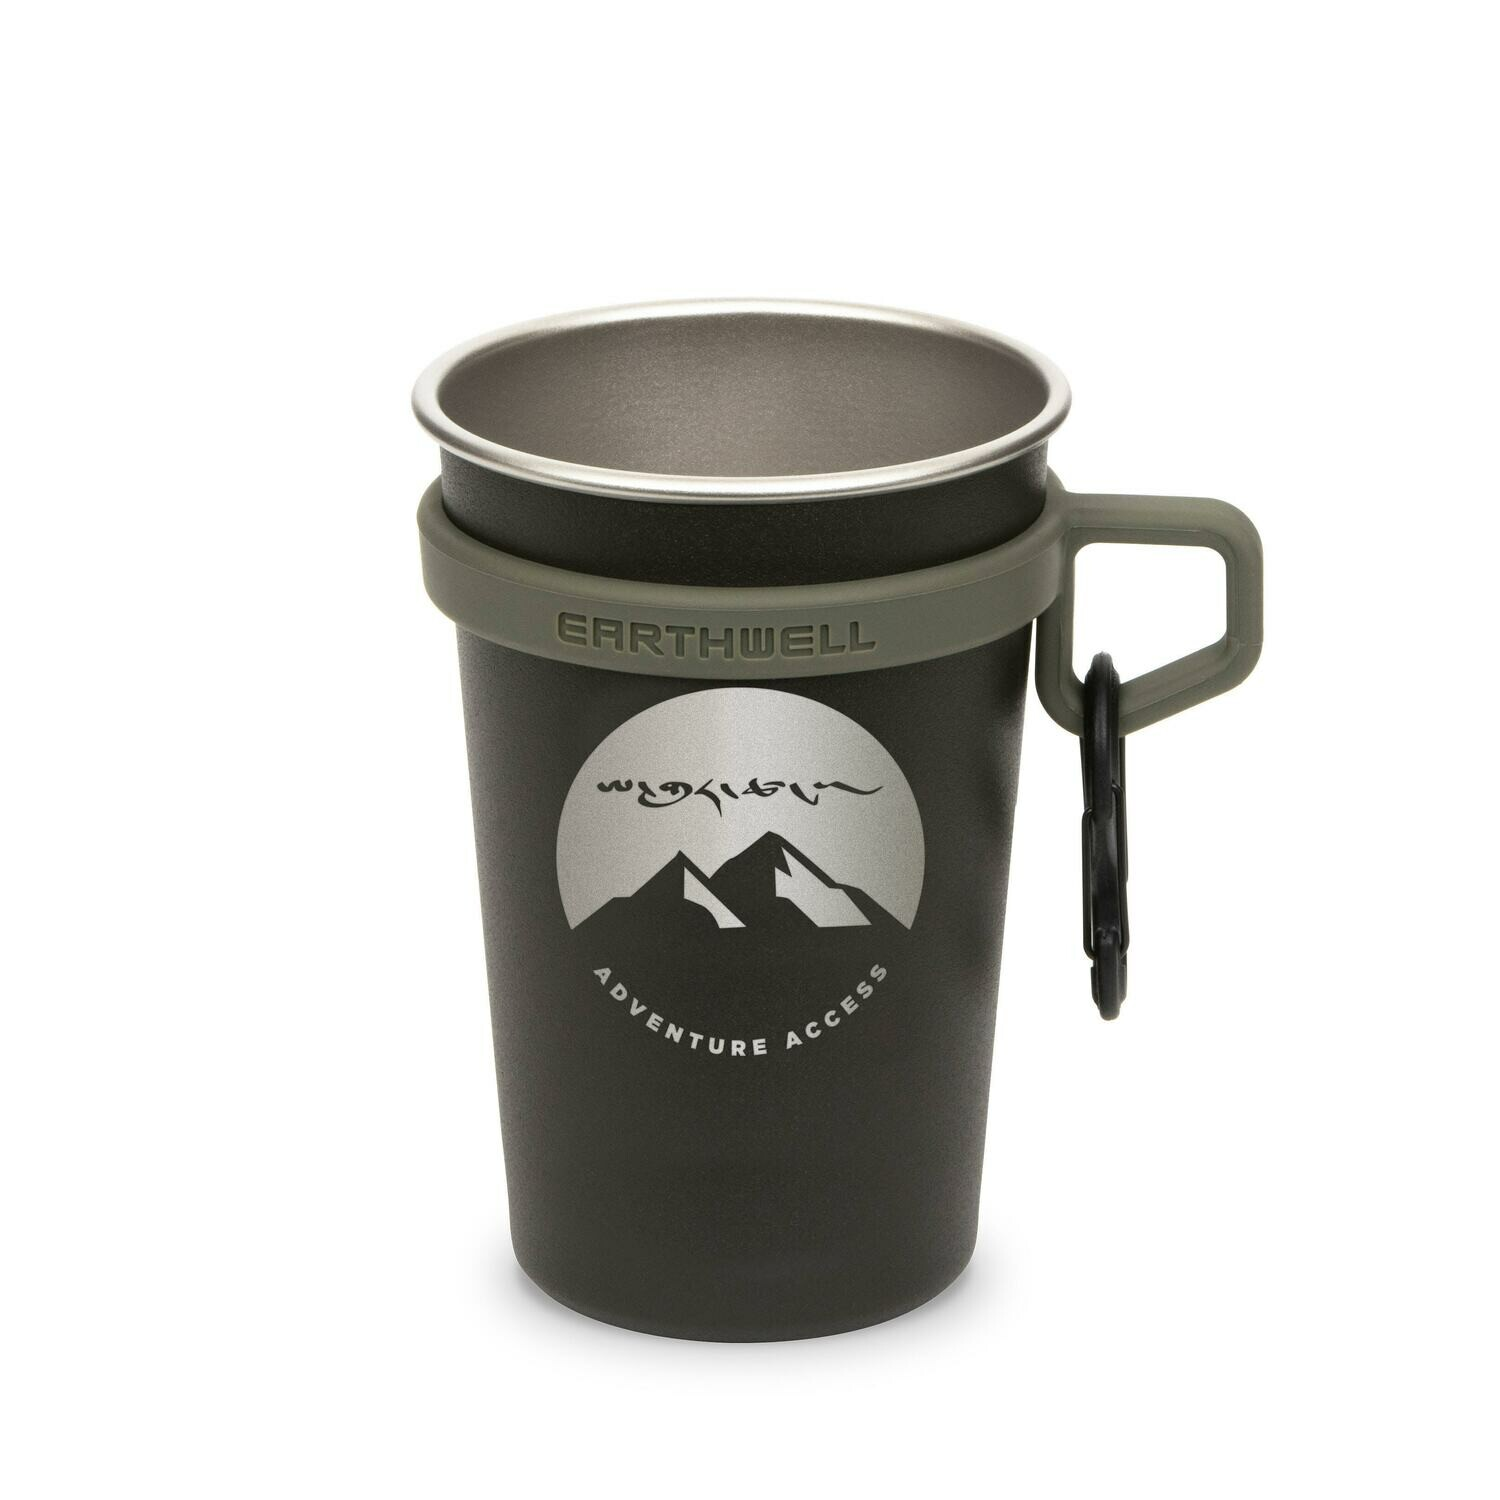 Earthwell 16oz LoopD™ Camp Cup - Tent Life Collab